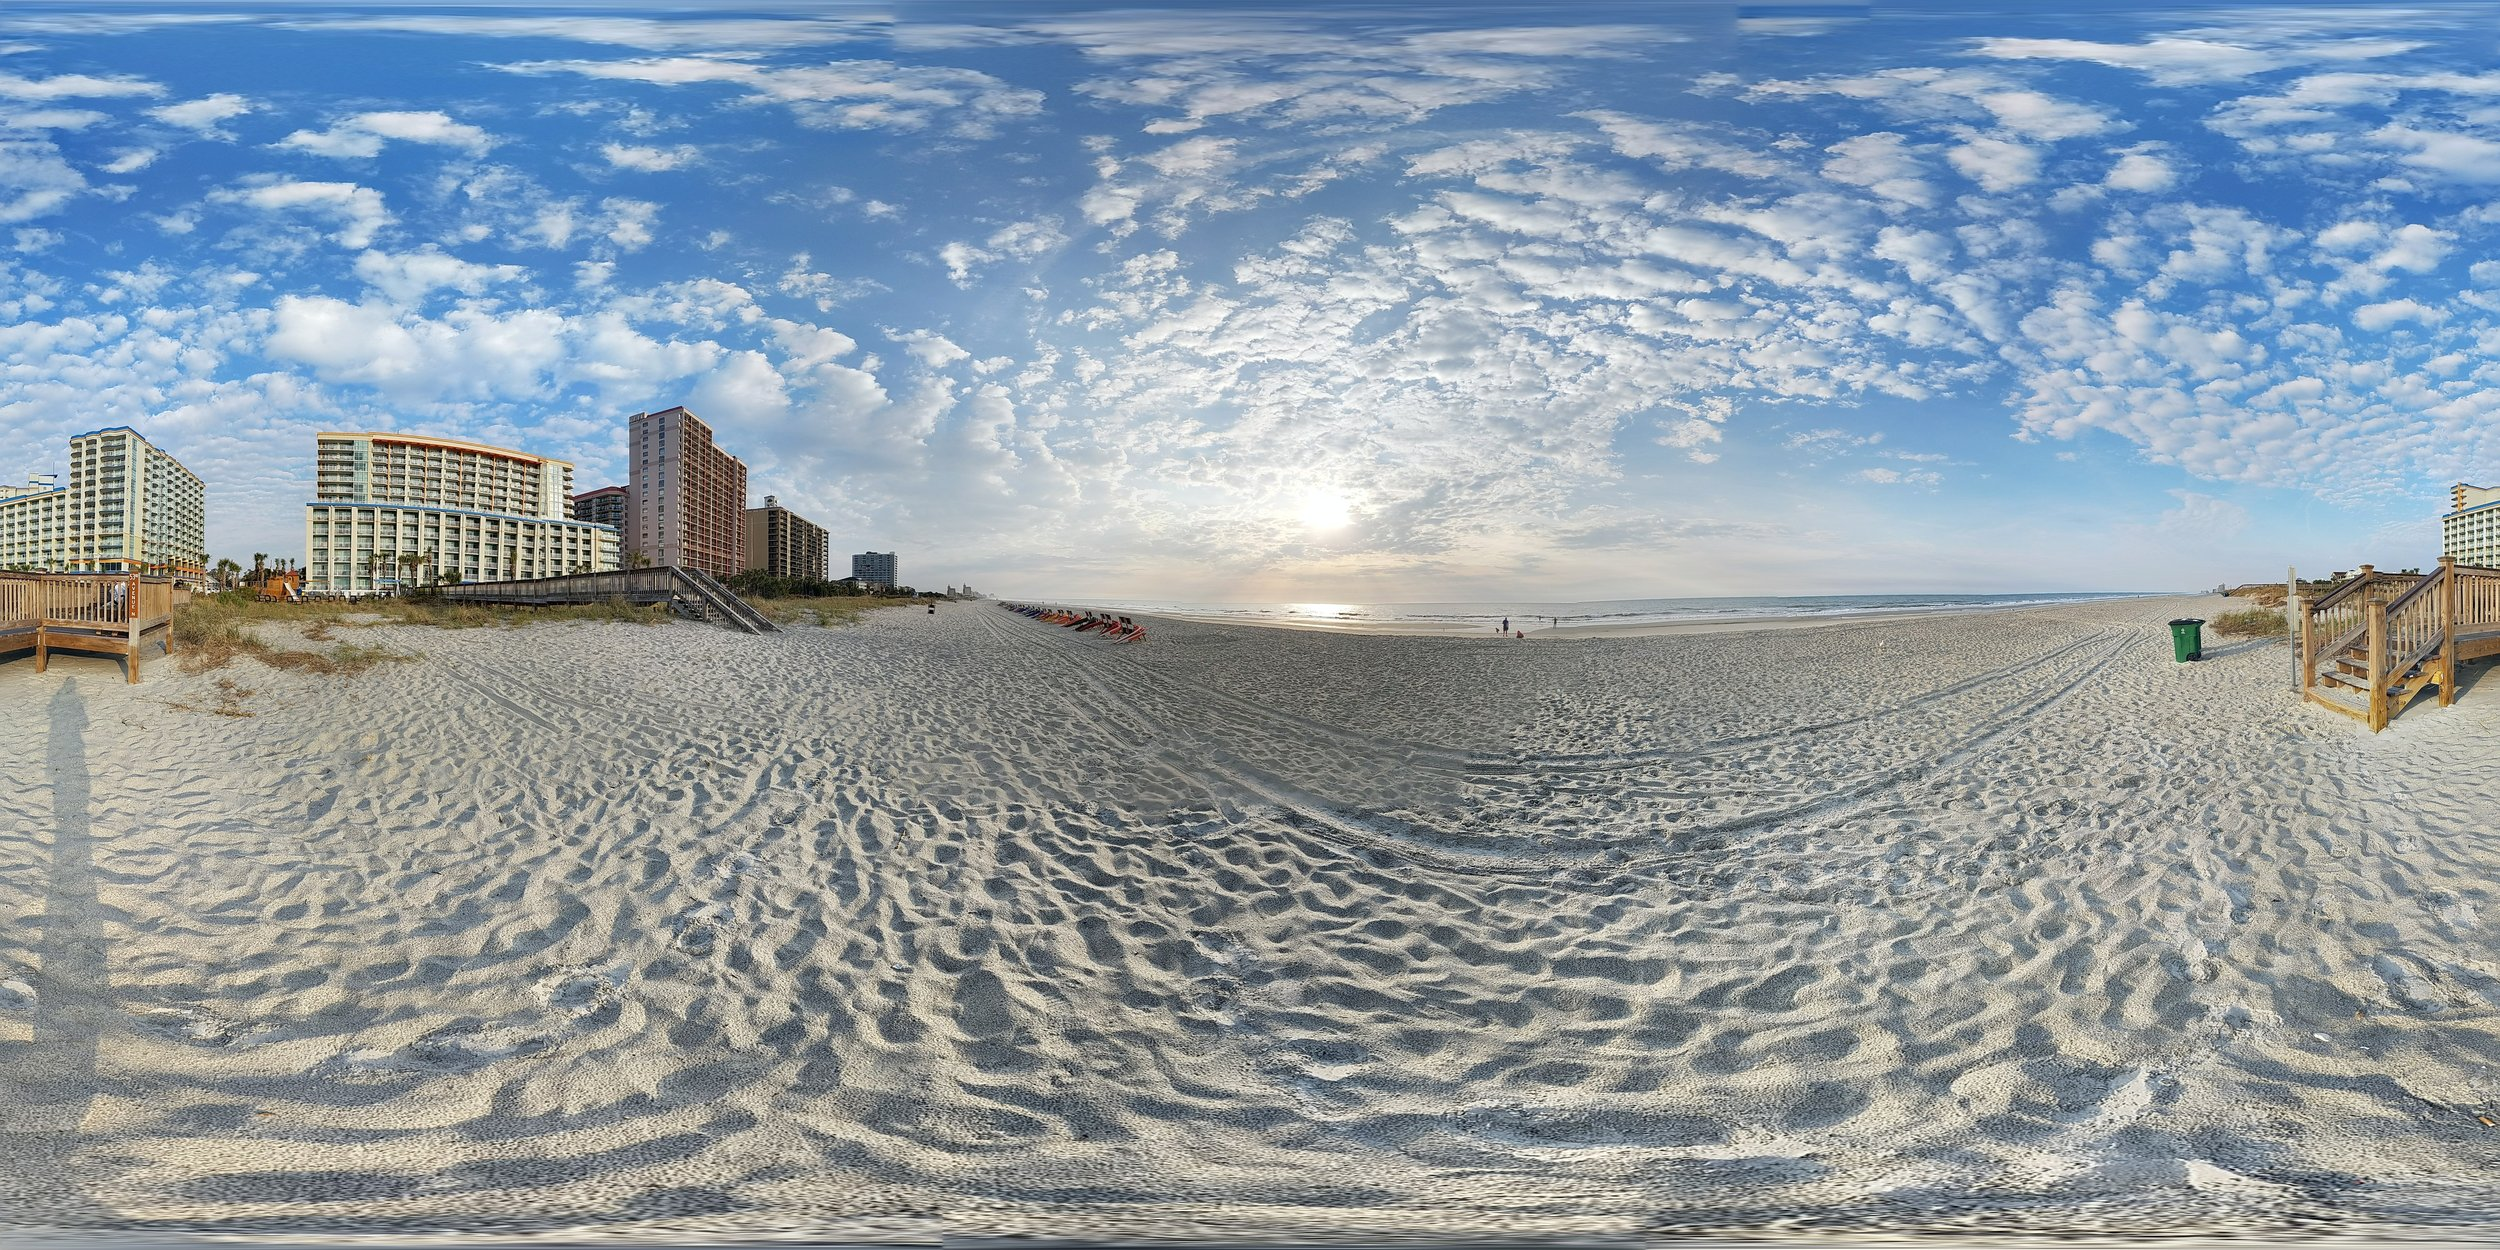 IMMERSED: Uskali and the other researchers look into the emotional connection Virtual Reality can give to the story. This photo is from Myrtle Beach.(Photo:  Jonas Tana/  Flickr )